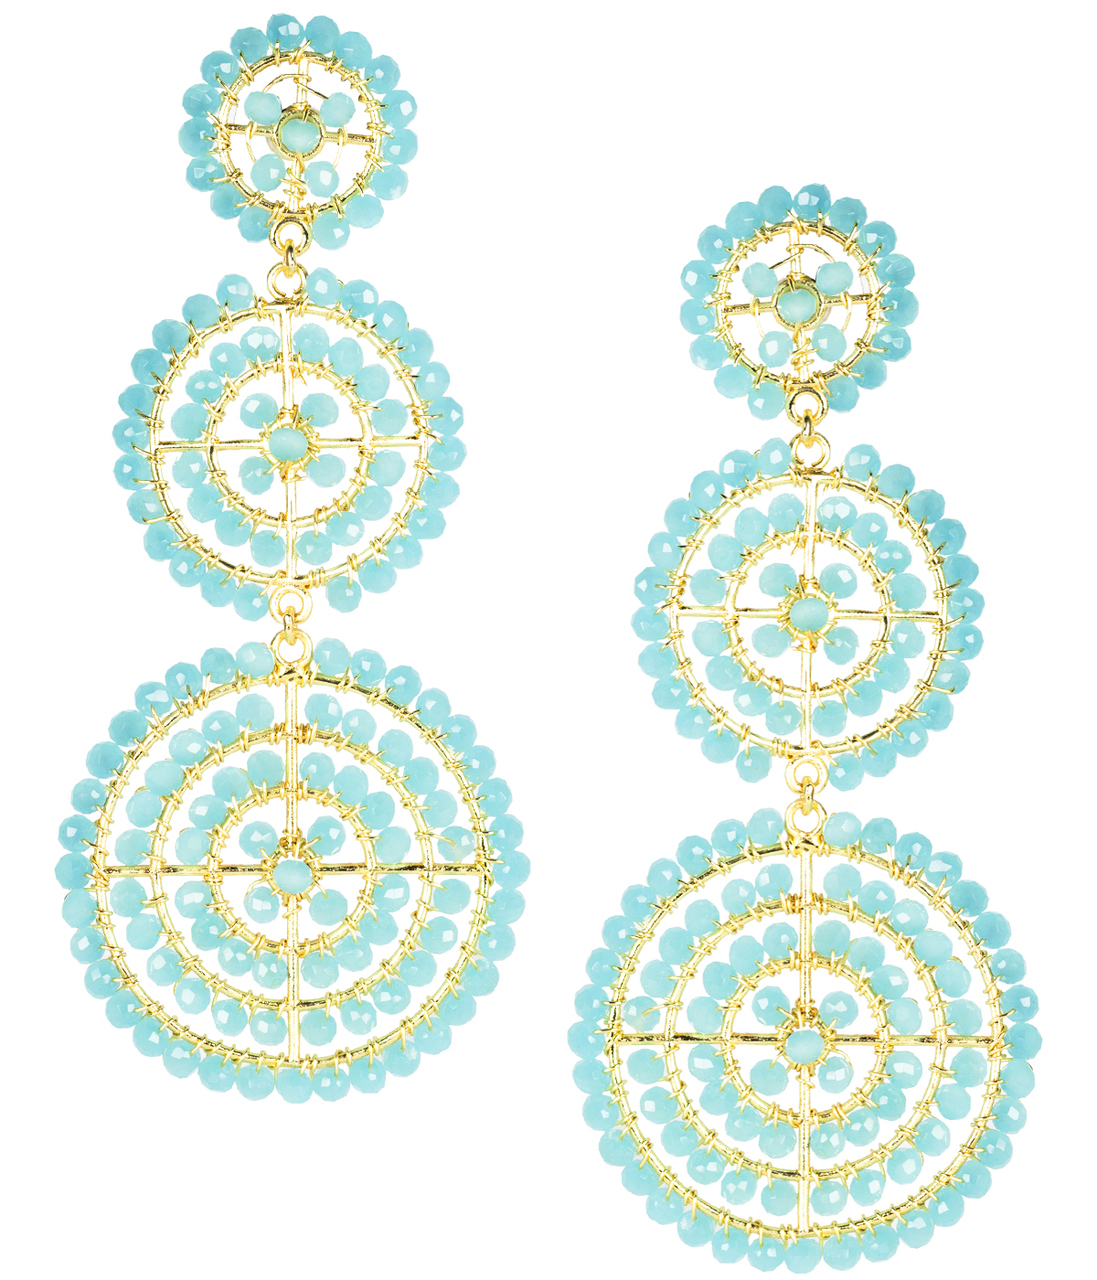 Greta Aqua Earrings